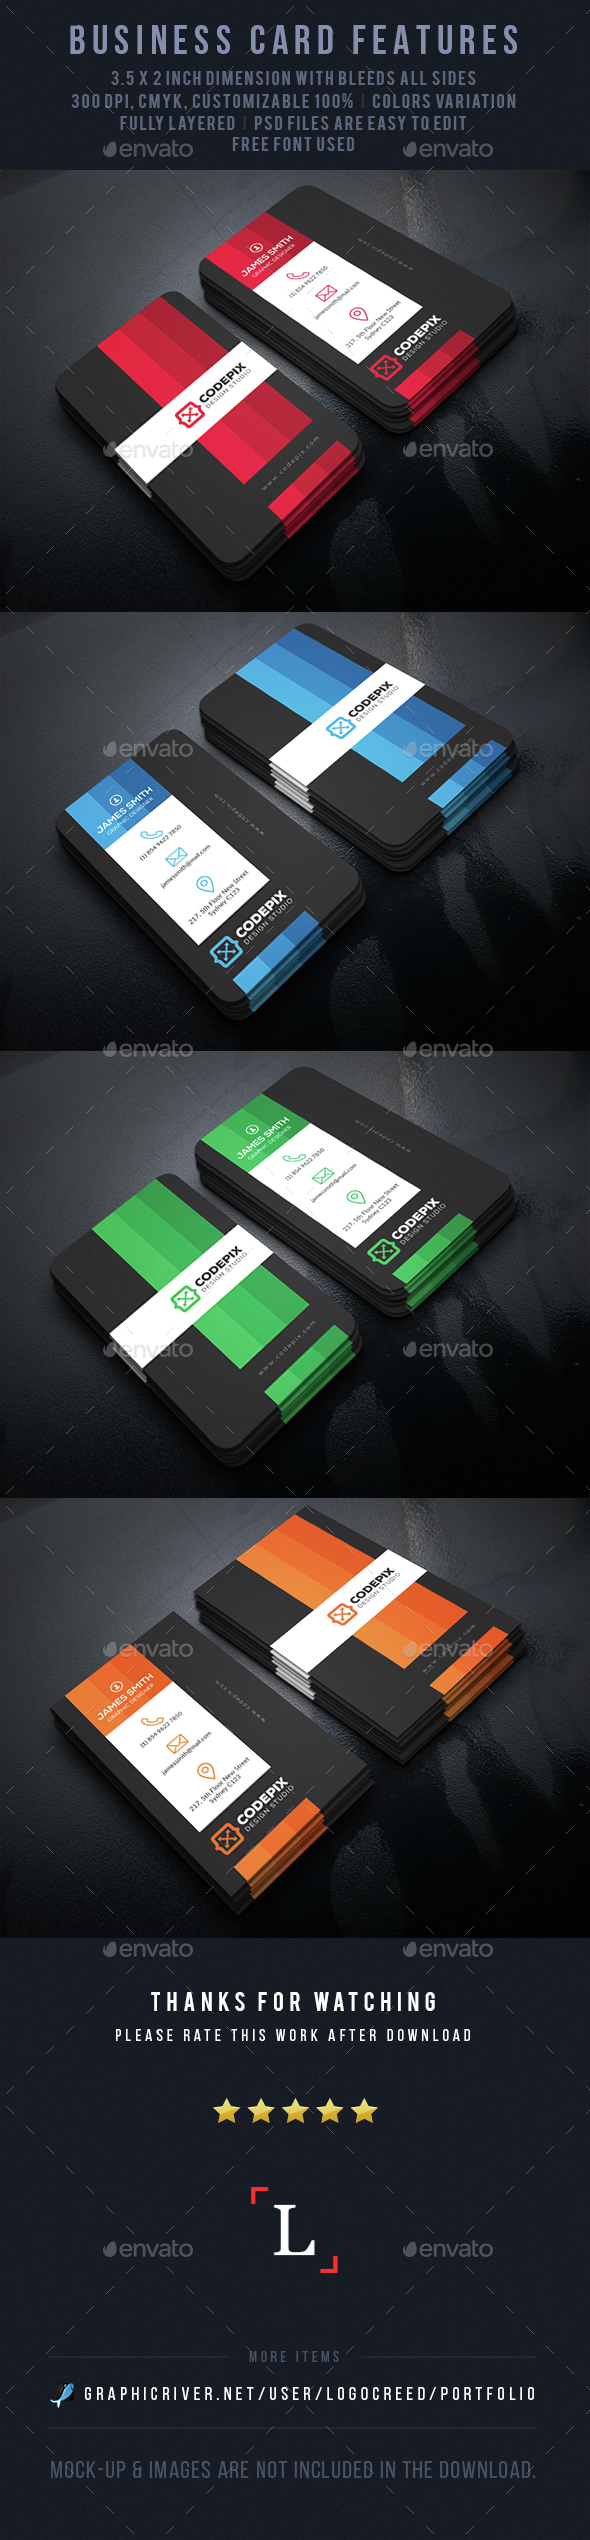 Color Shade Business Card - Business Cards Print Templates